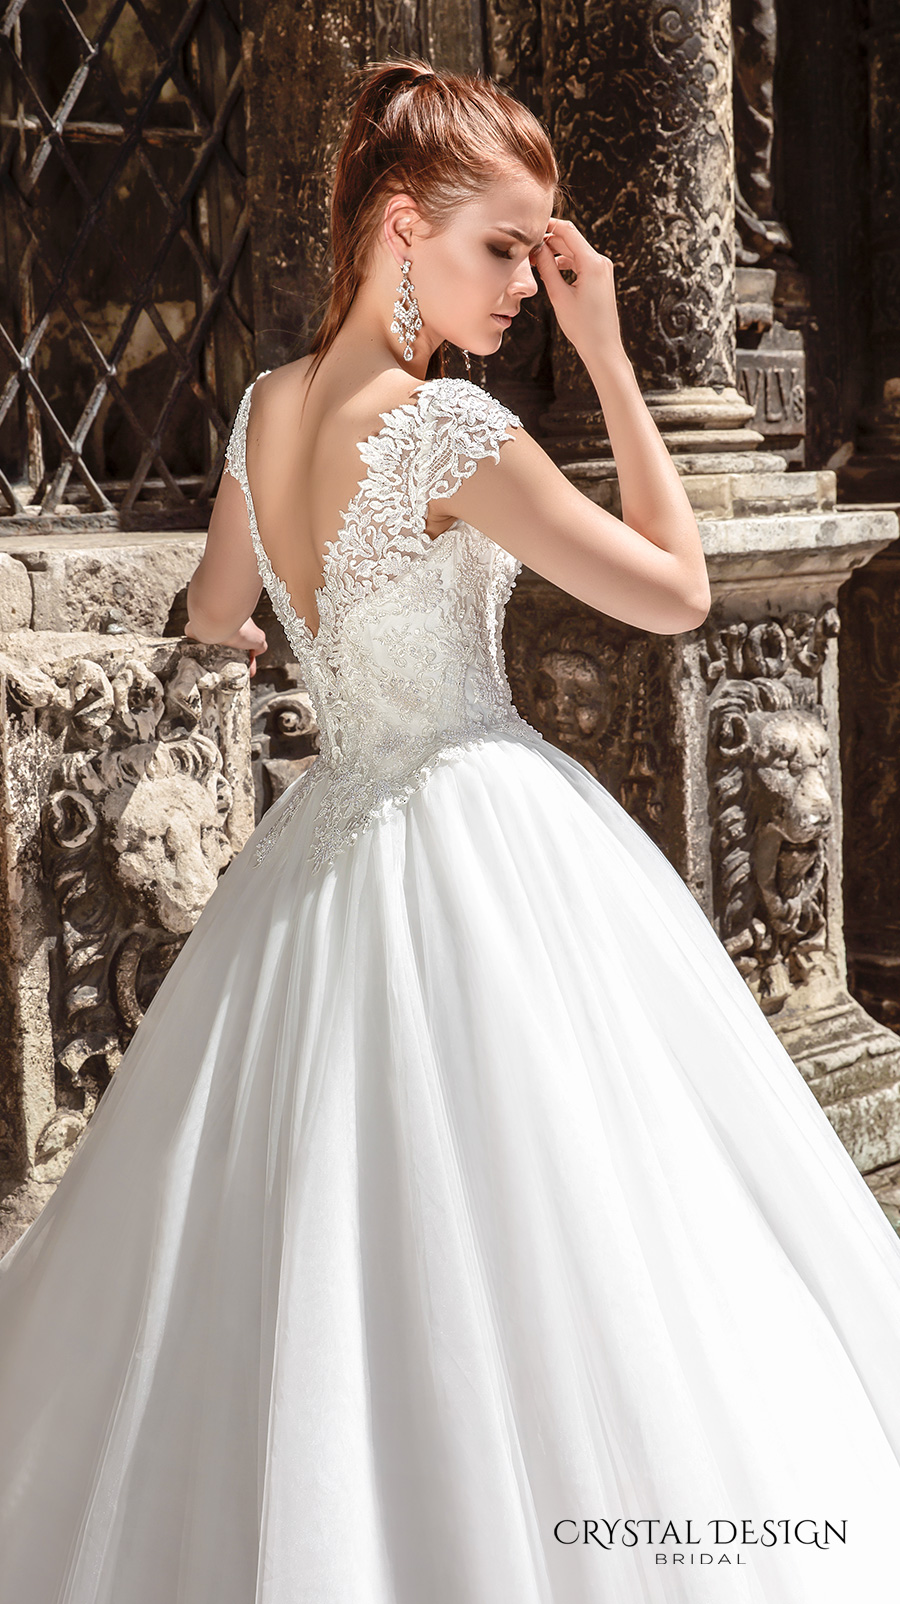 crystal design bridal 2016 cap sleeves scoop round neckline heavily embellished bodice a line tulle ball gown wedding dress v back chapel train (maram) zbv